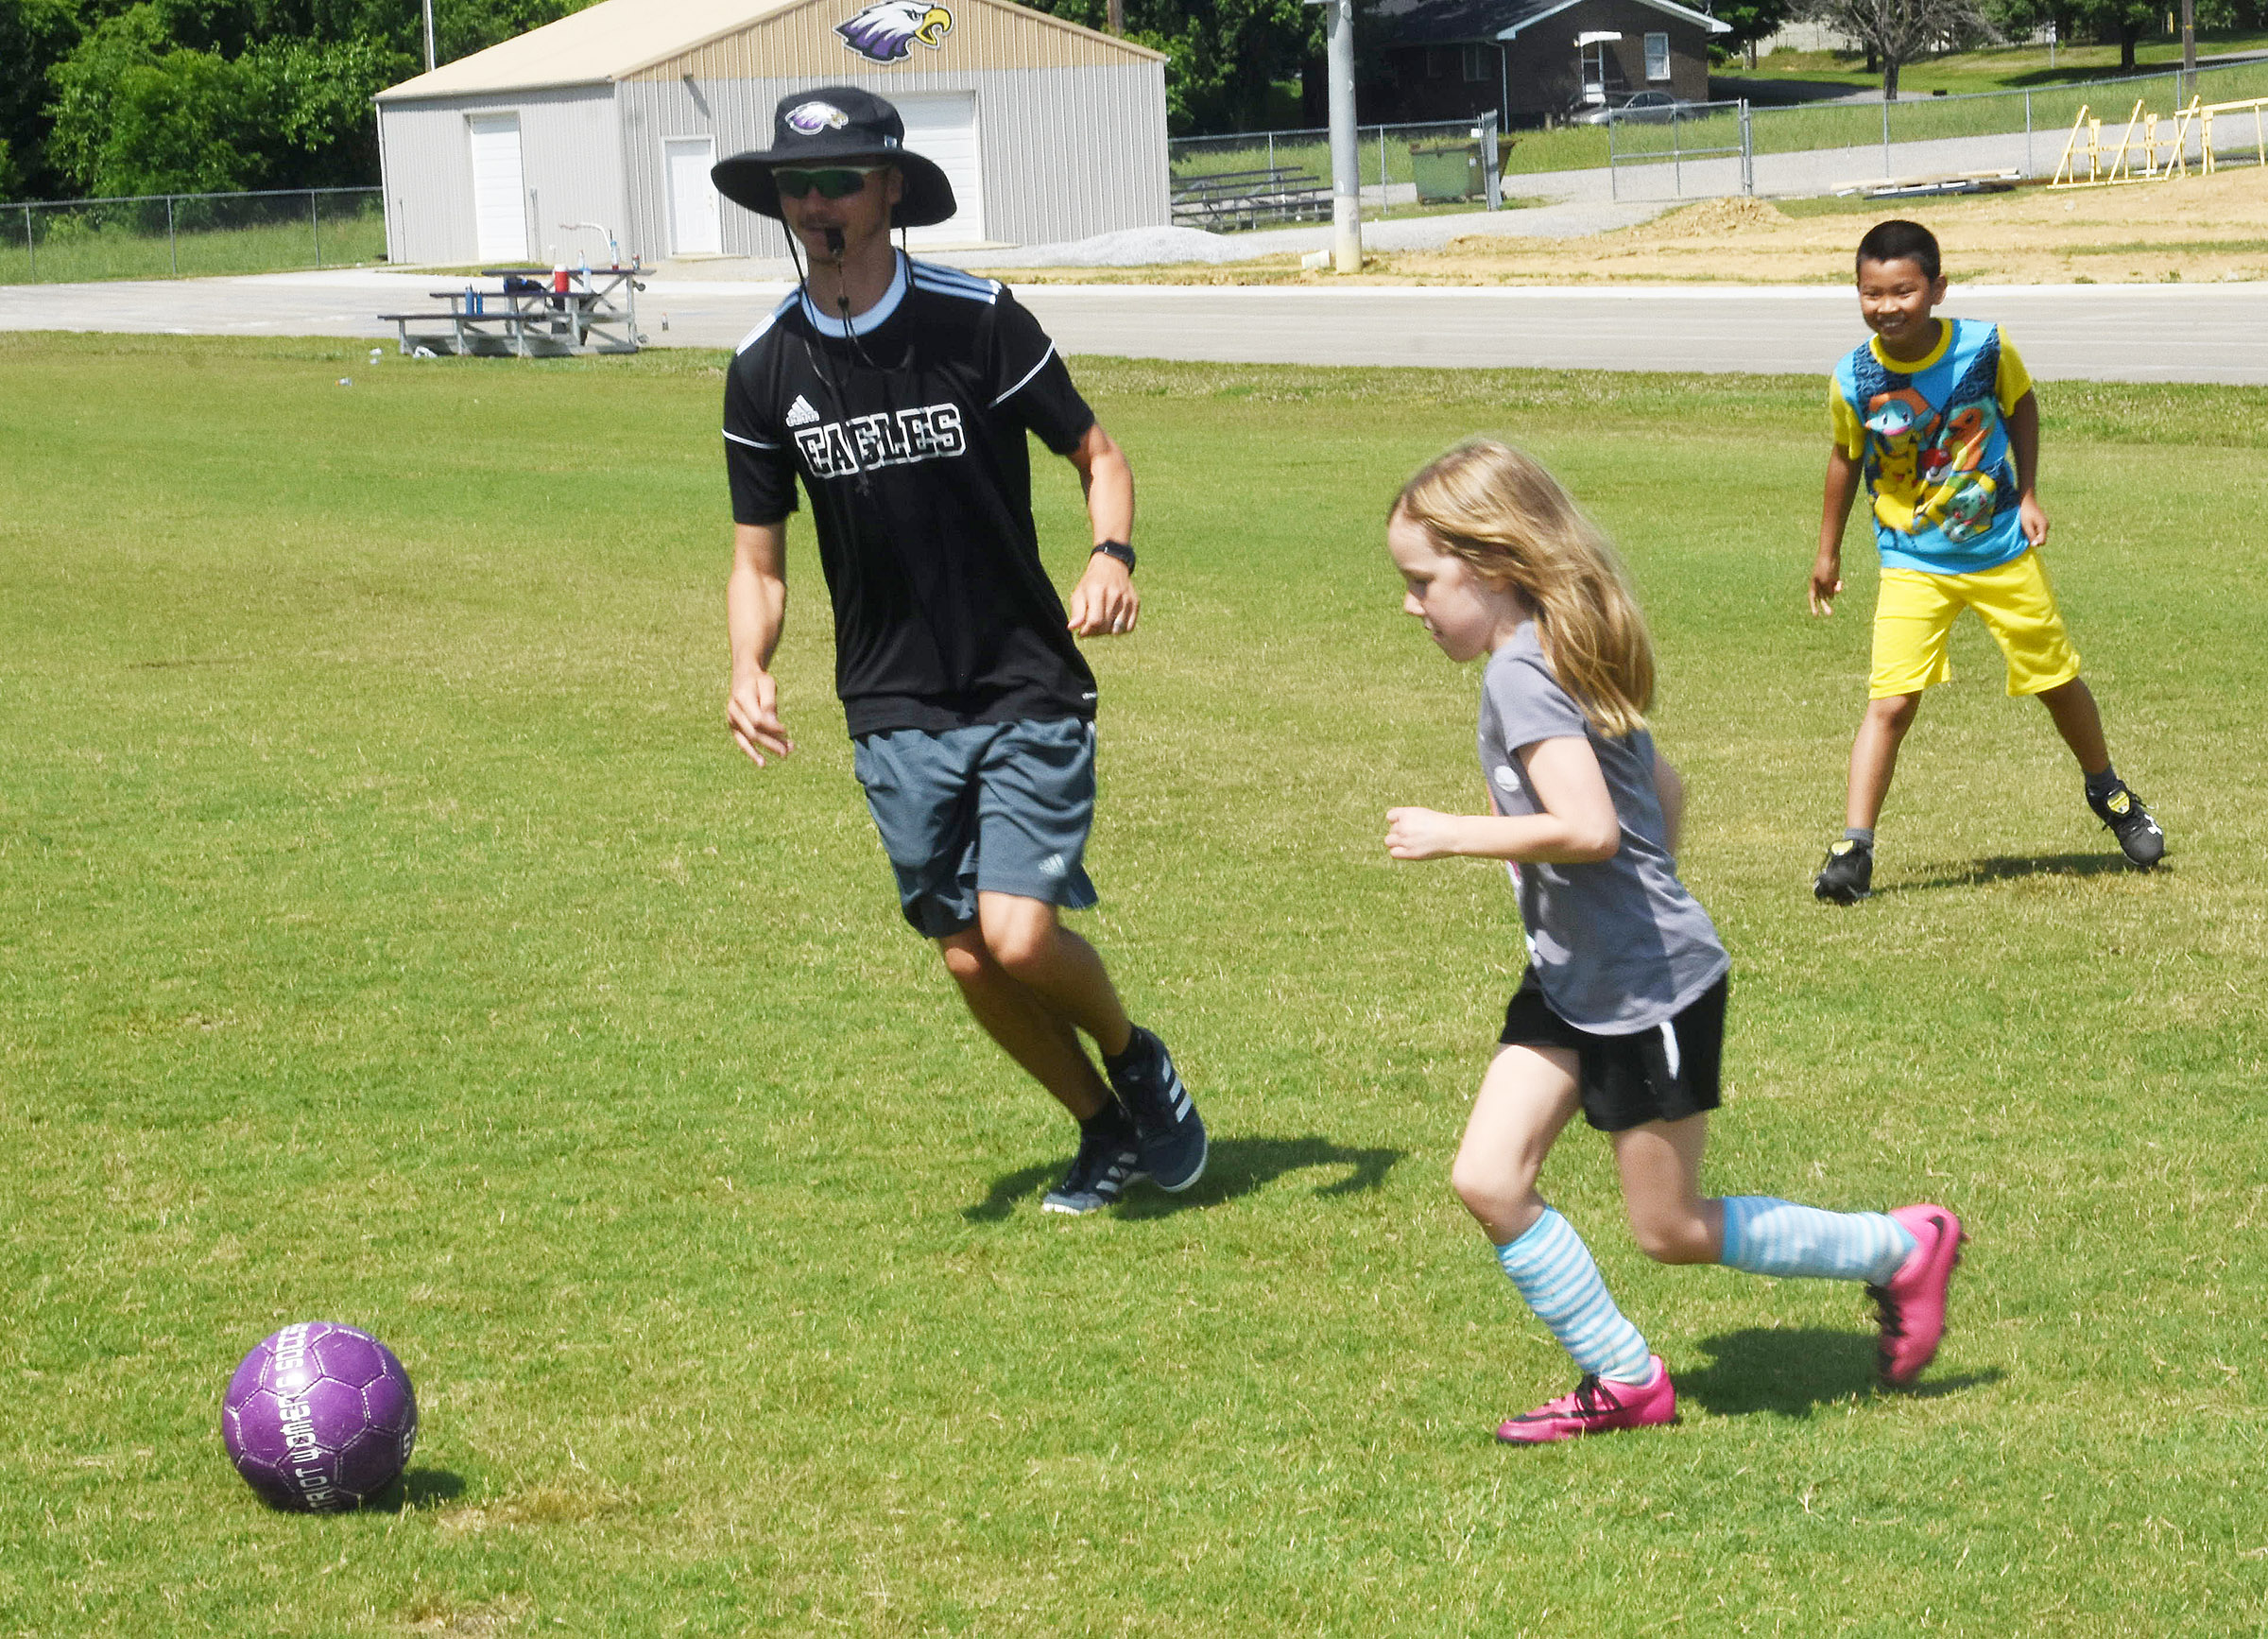 CHS head soccer coach Bradley Harris leads a drill with campers Athena Angel, at left, and Campbellsville Elementary School fourth-grader Alfie Su.